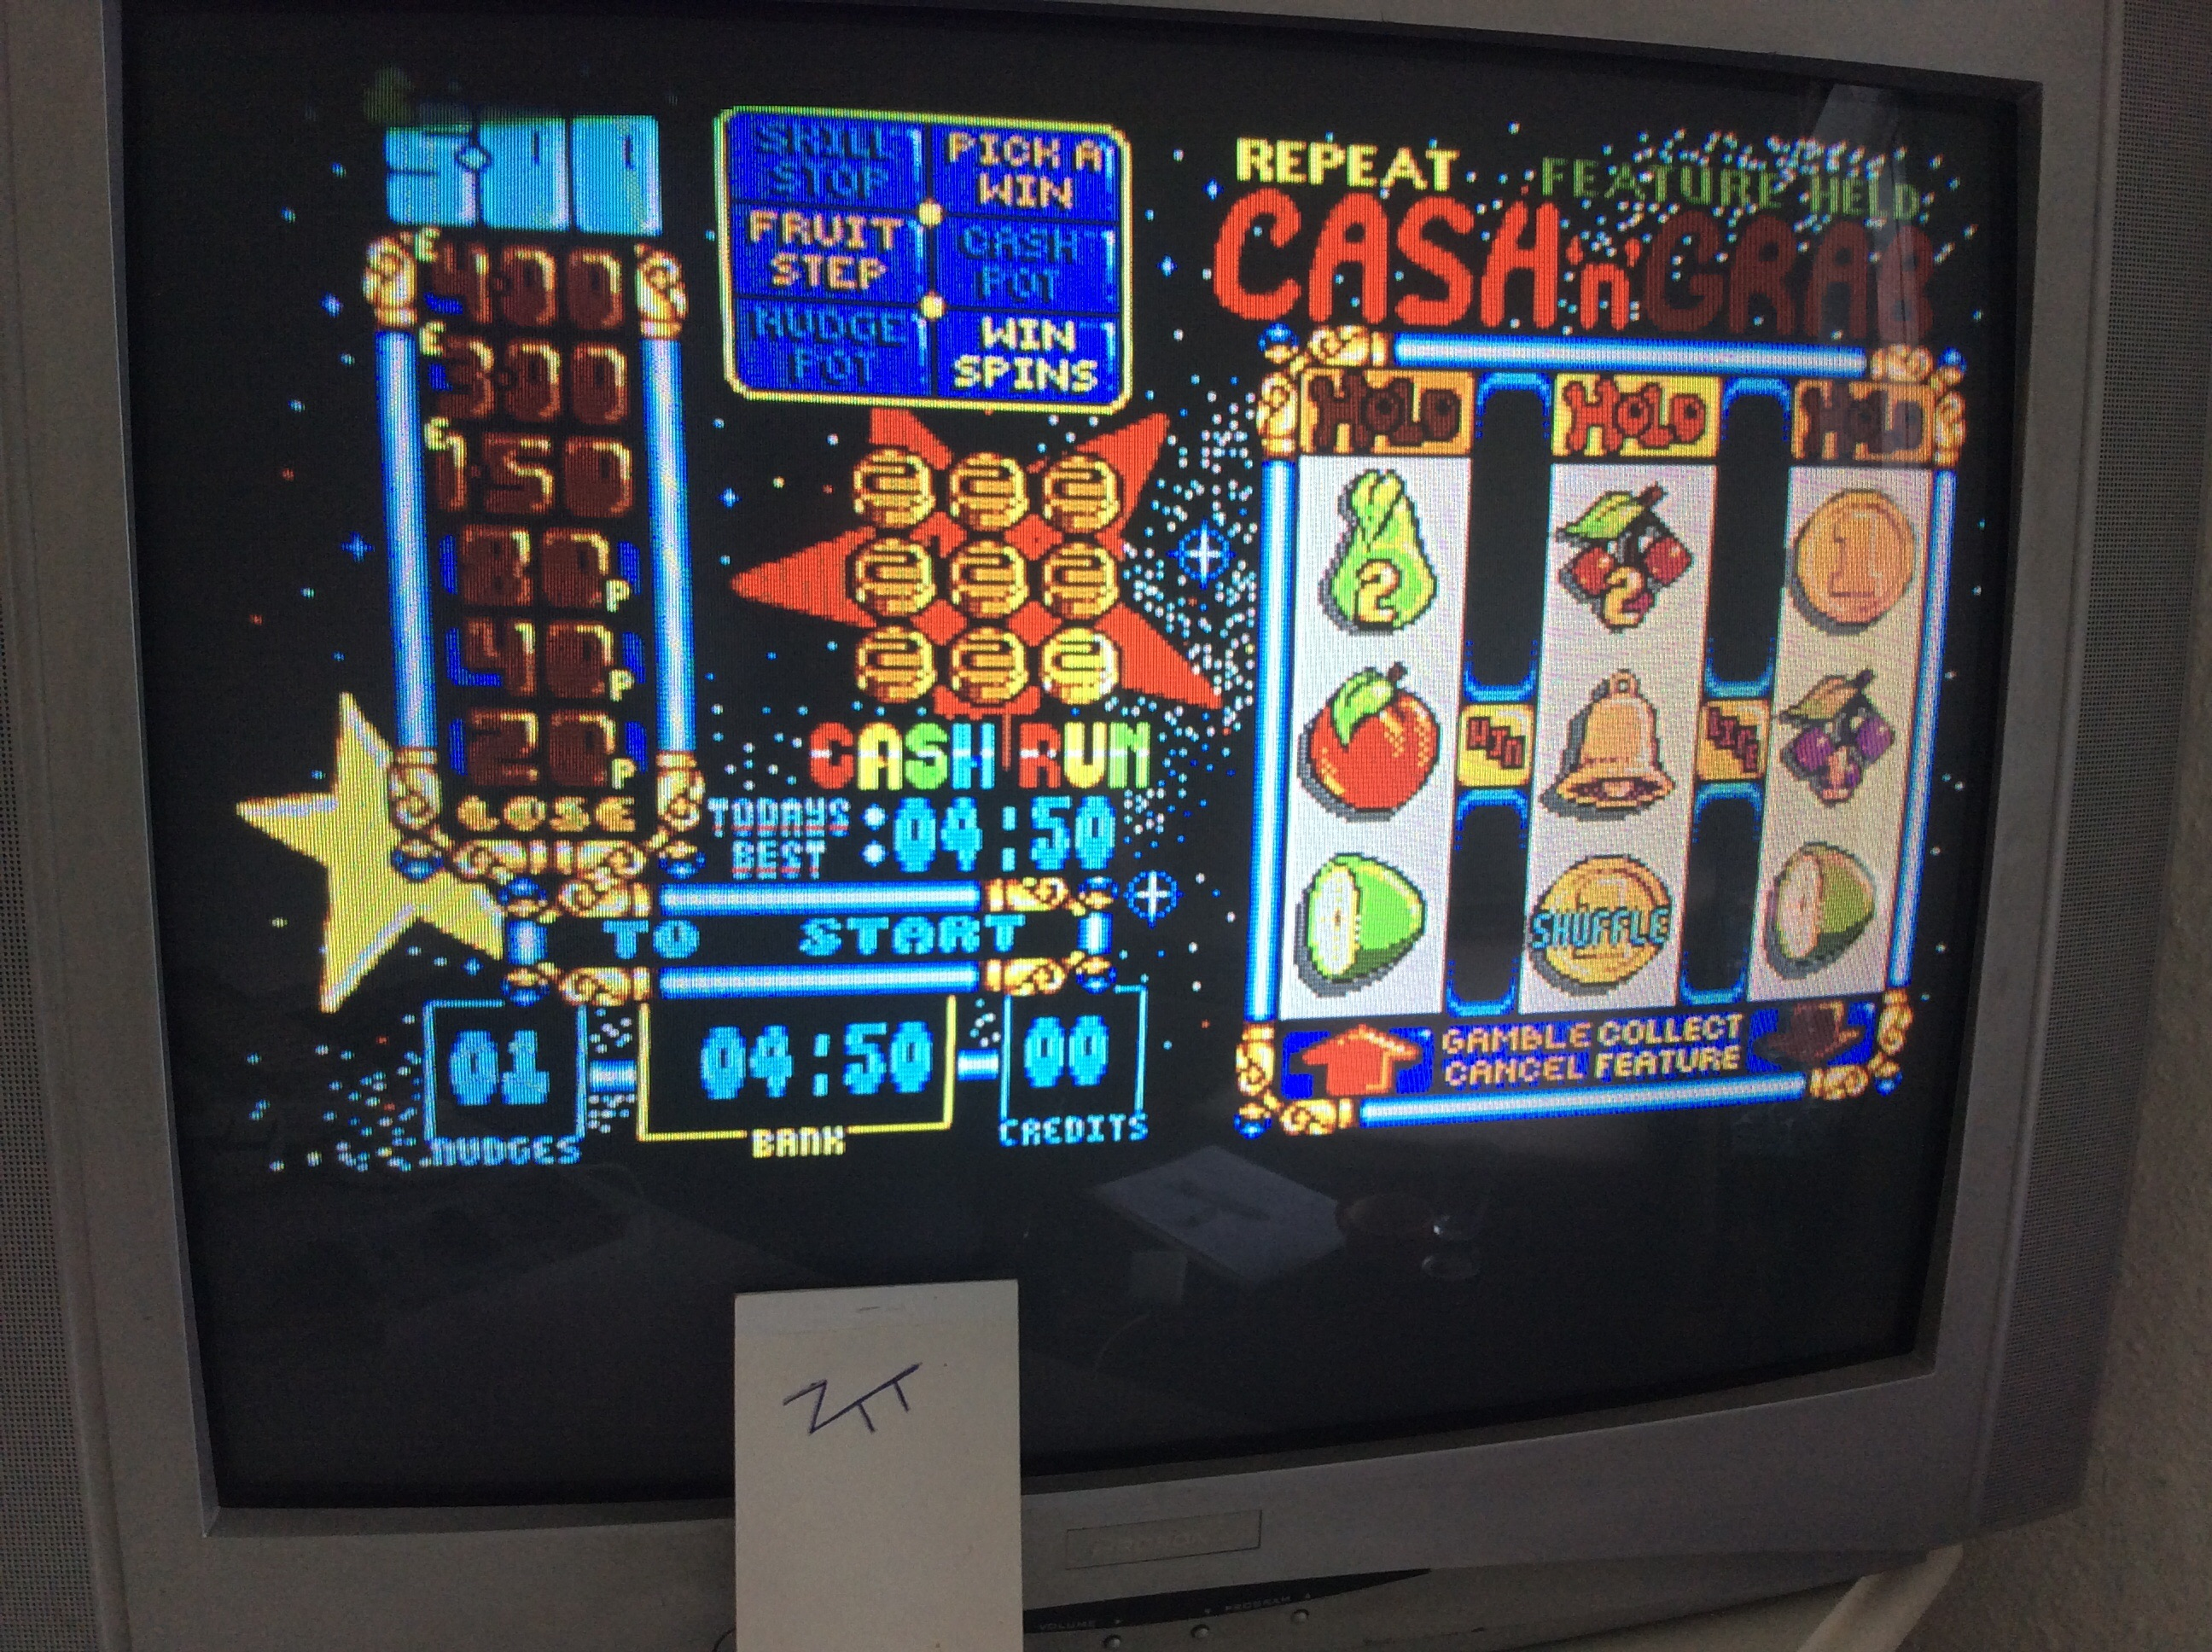 Frankie: Arcade Fruit Machine [Pence * 1][Game must be ended with